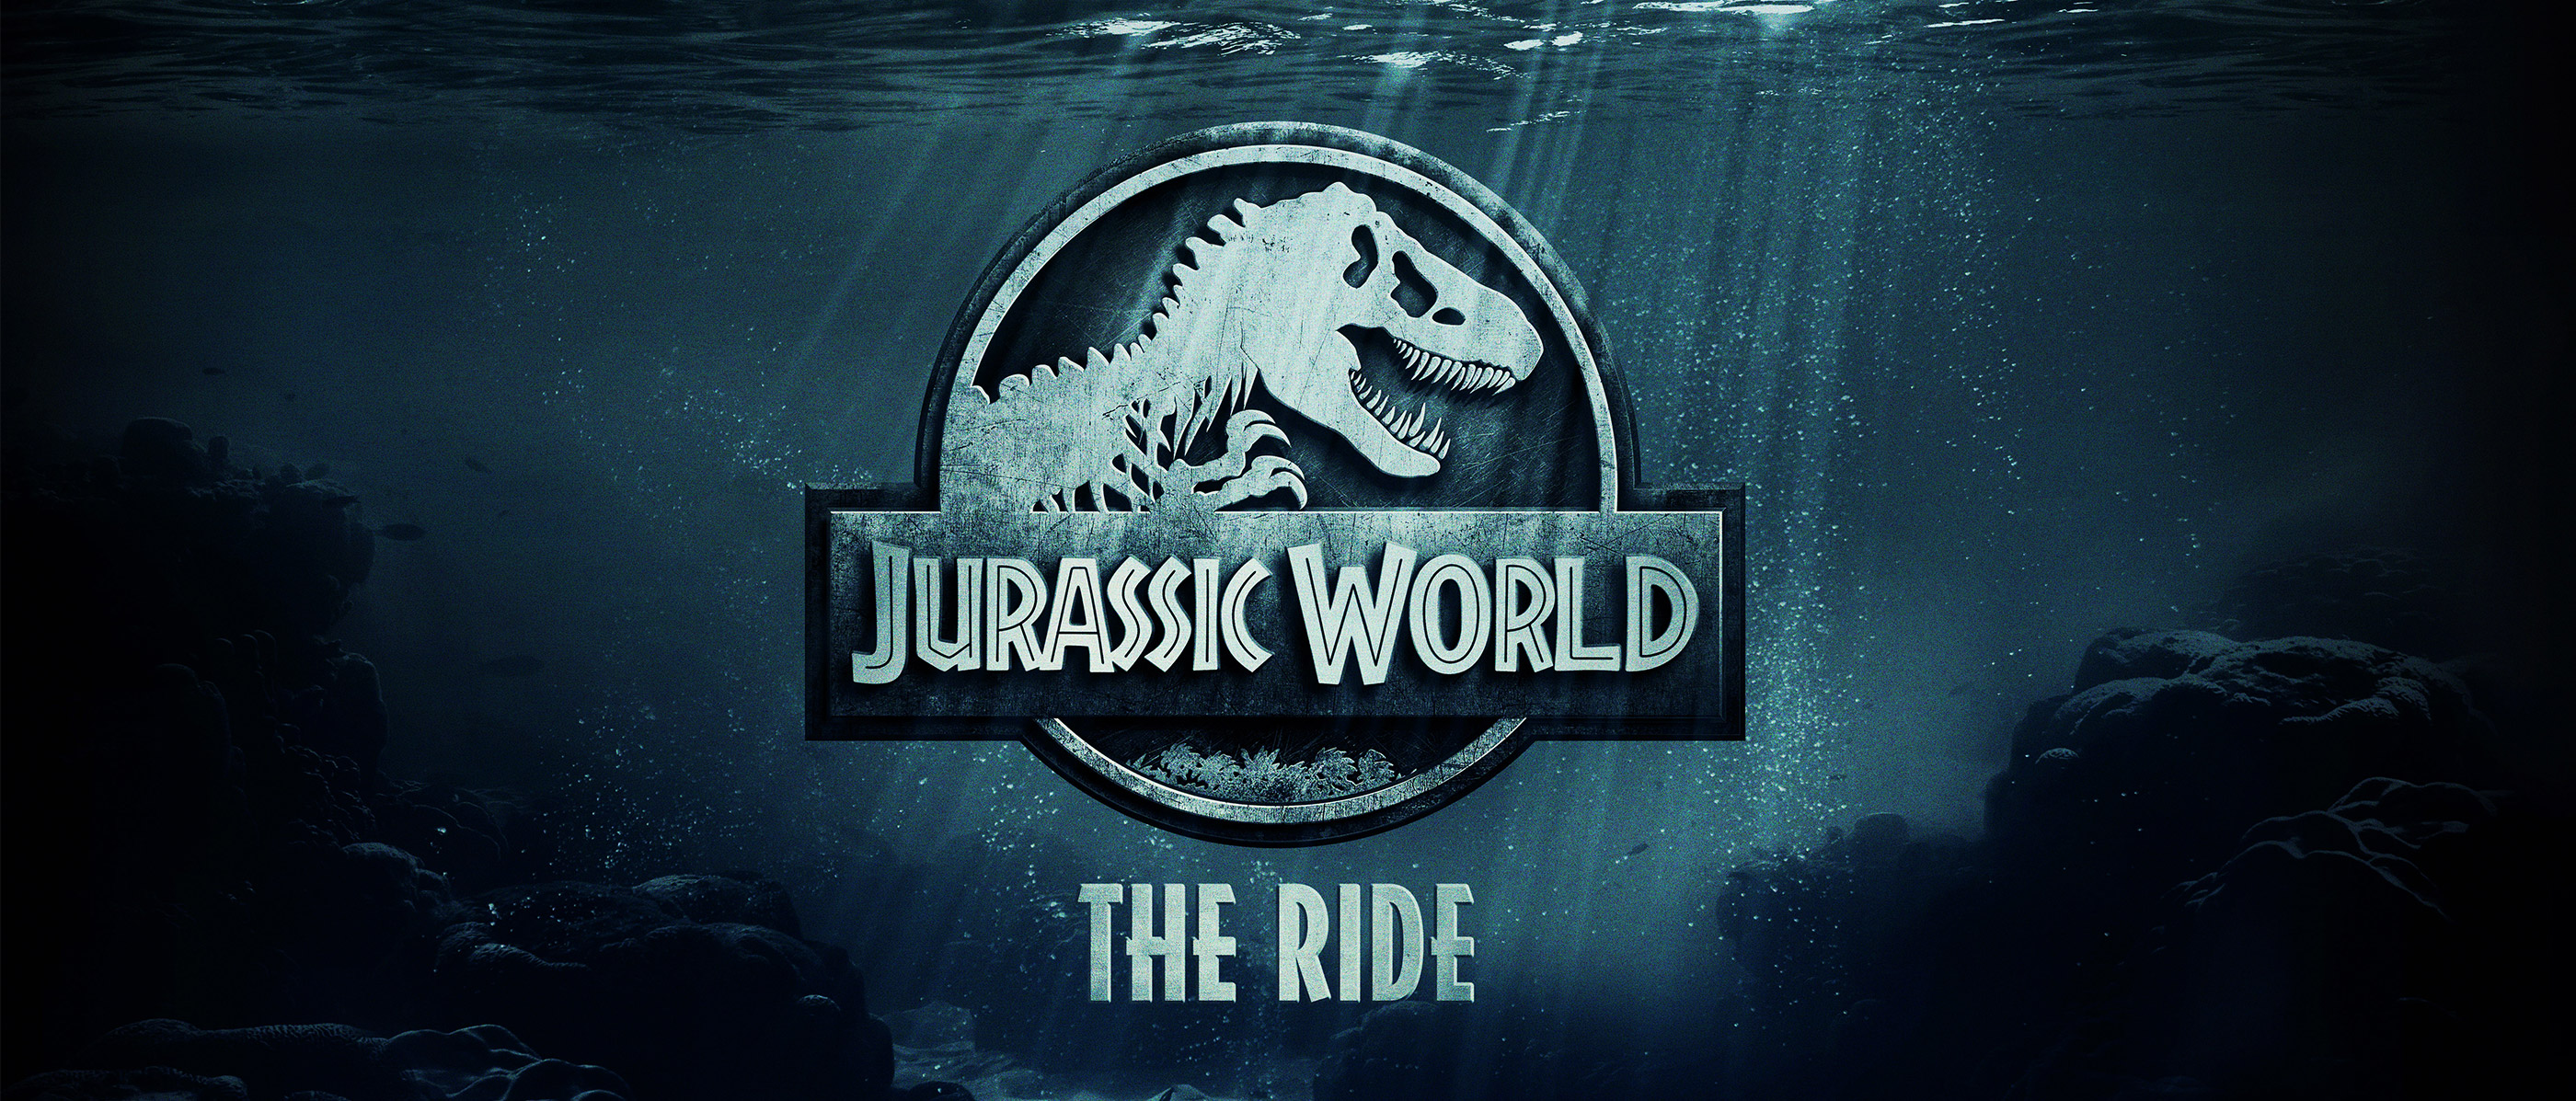 Jurassic World Park - The Ride